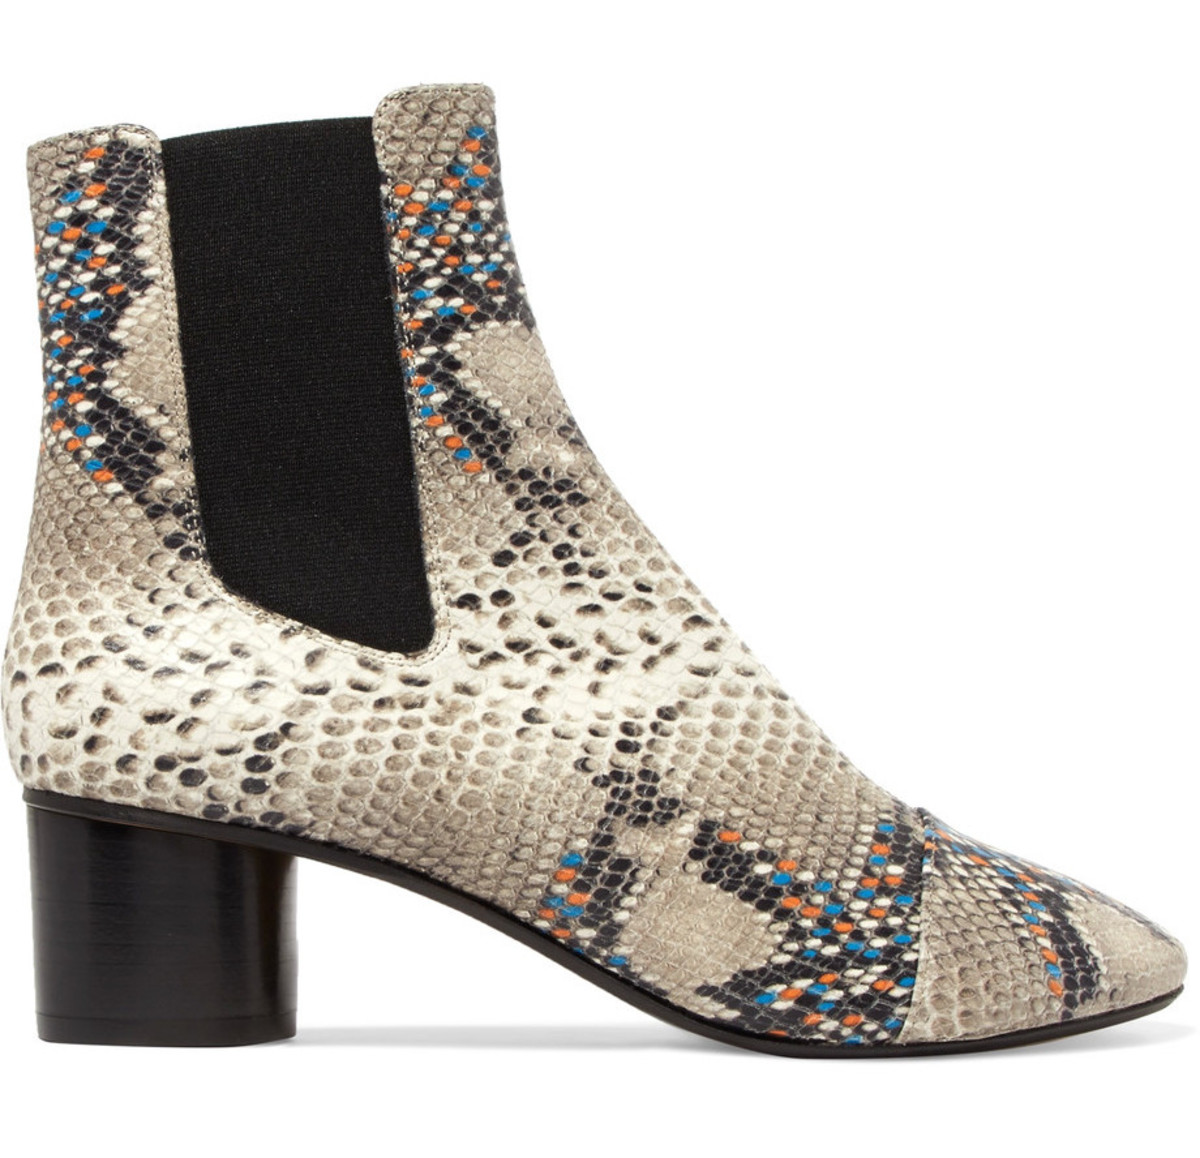 Isabel Marant Danelya python-effect boots, $655, available at Net-A-Porter.